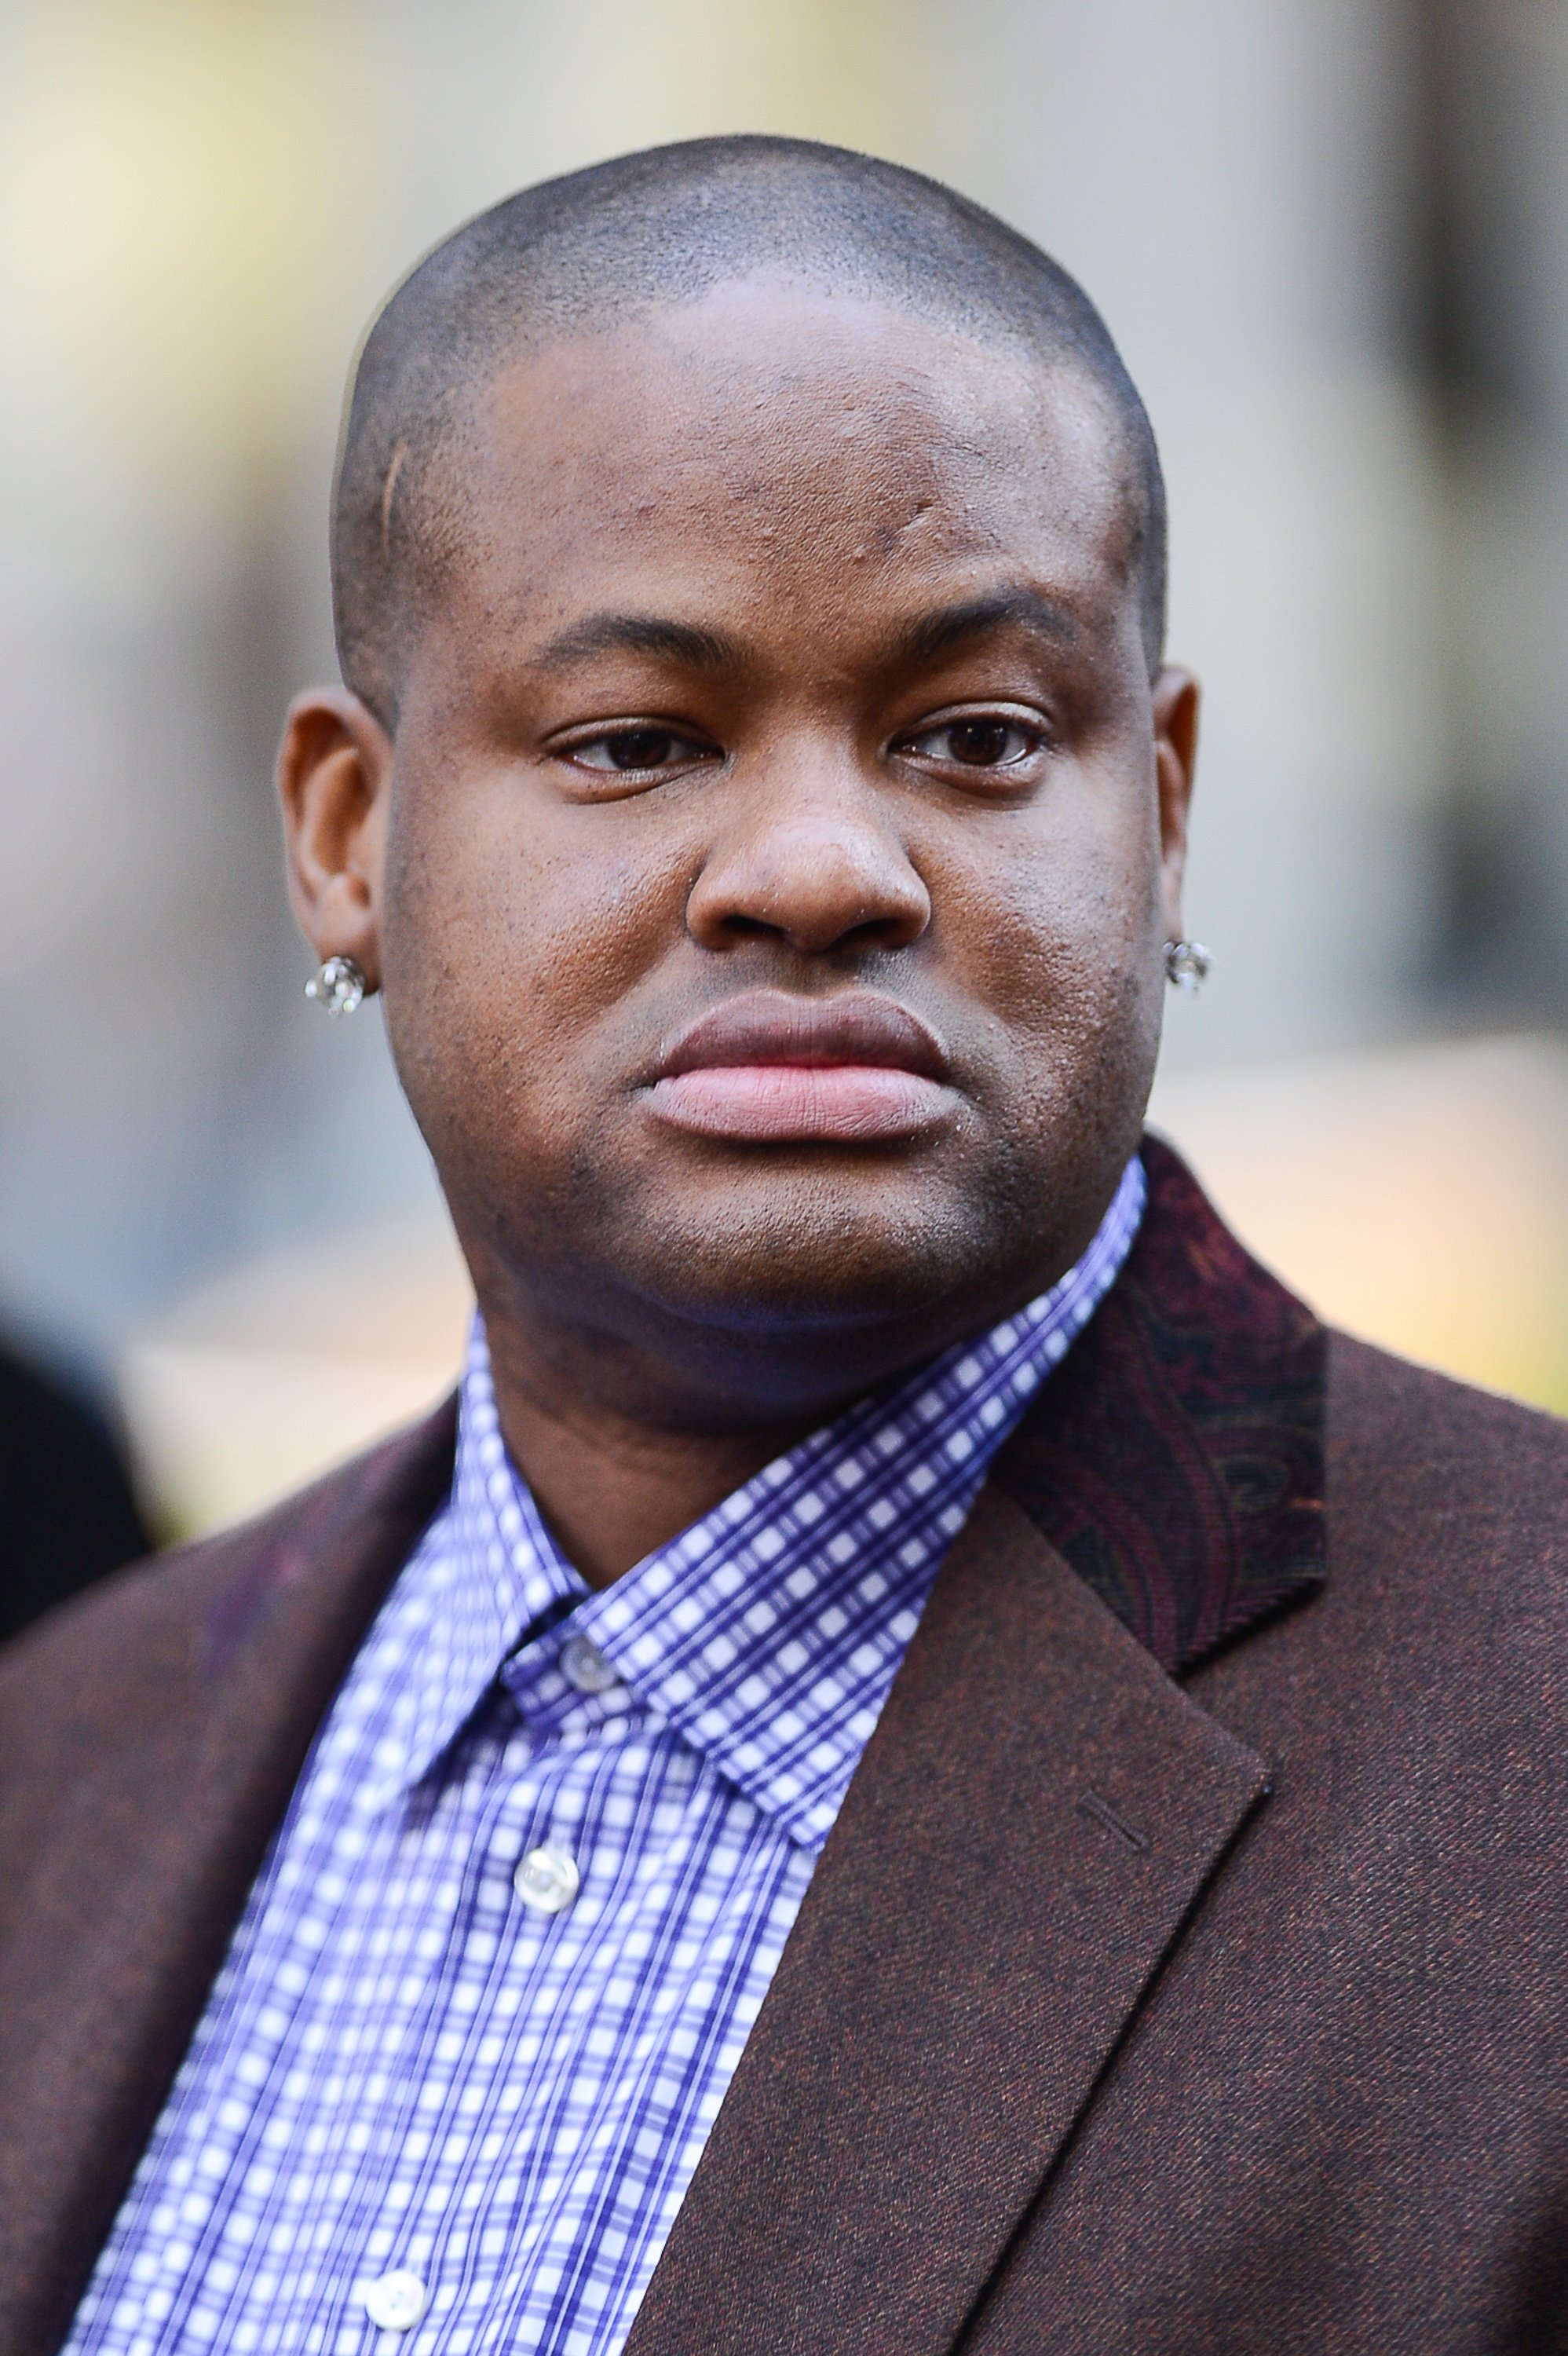 Vincent Herbert in New York City in September 2012. | Photo: Getty Images